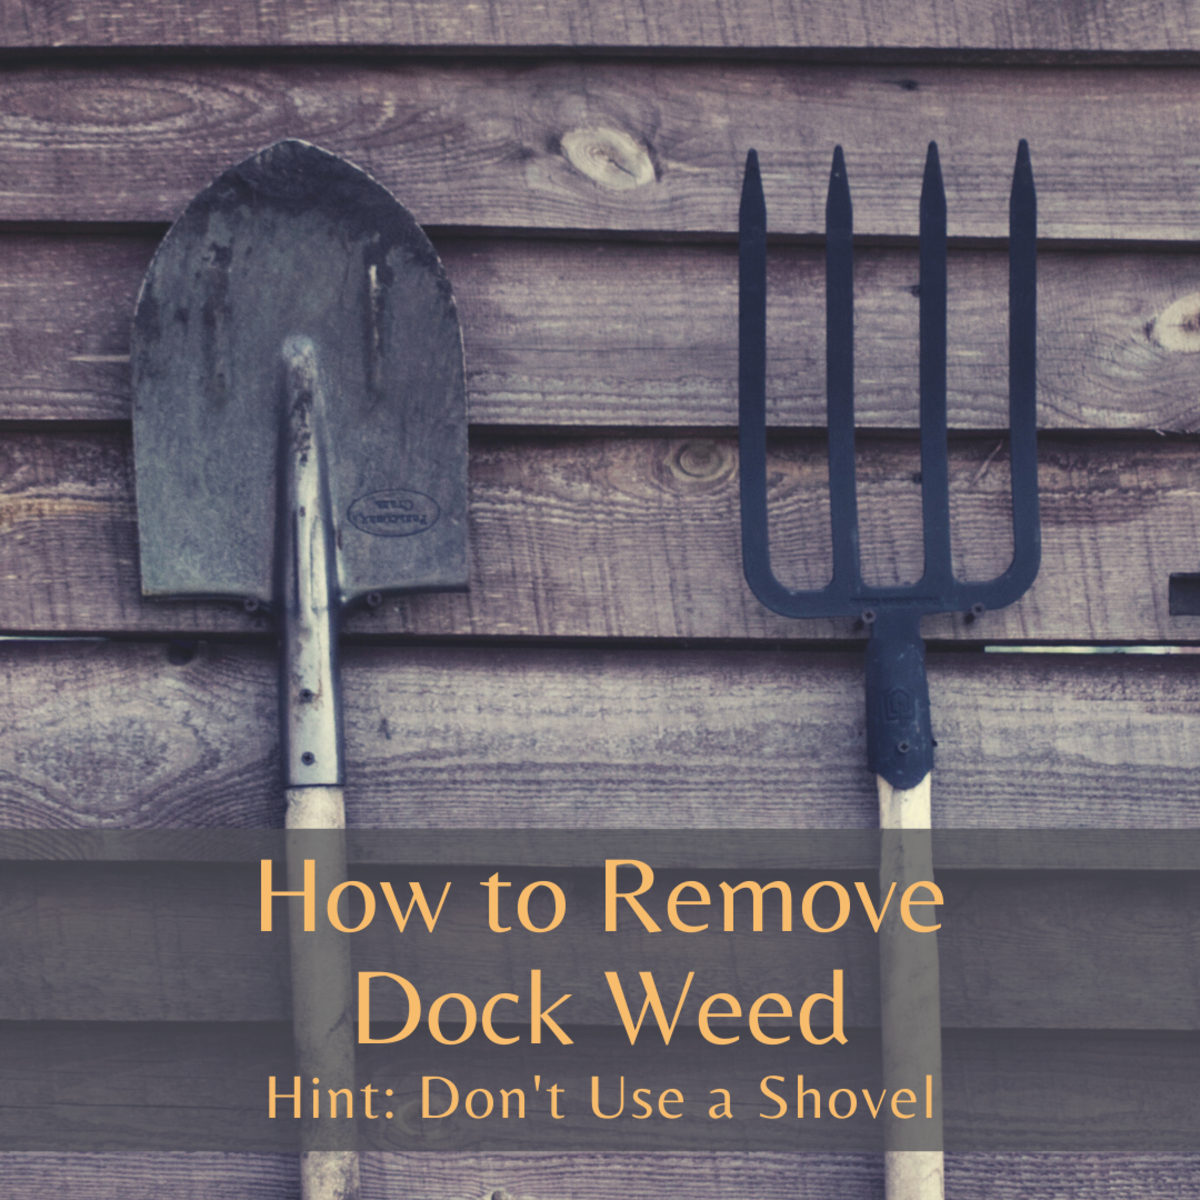 Don't use a shovel or trowel to remove dock weed.